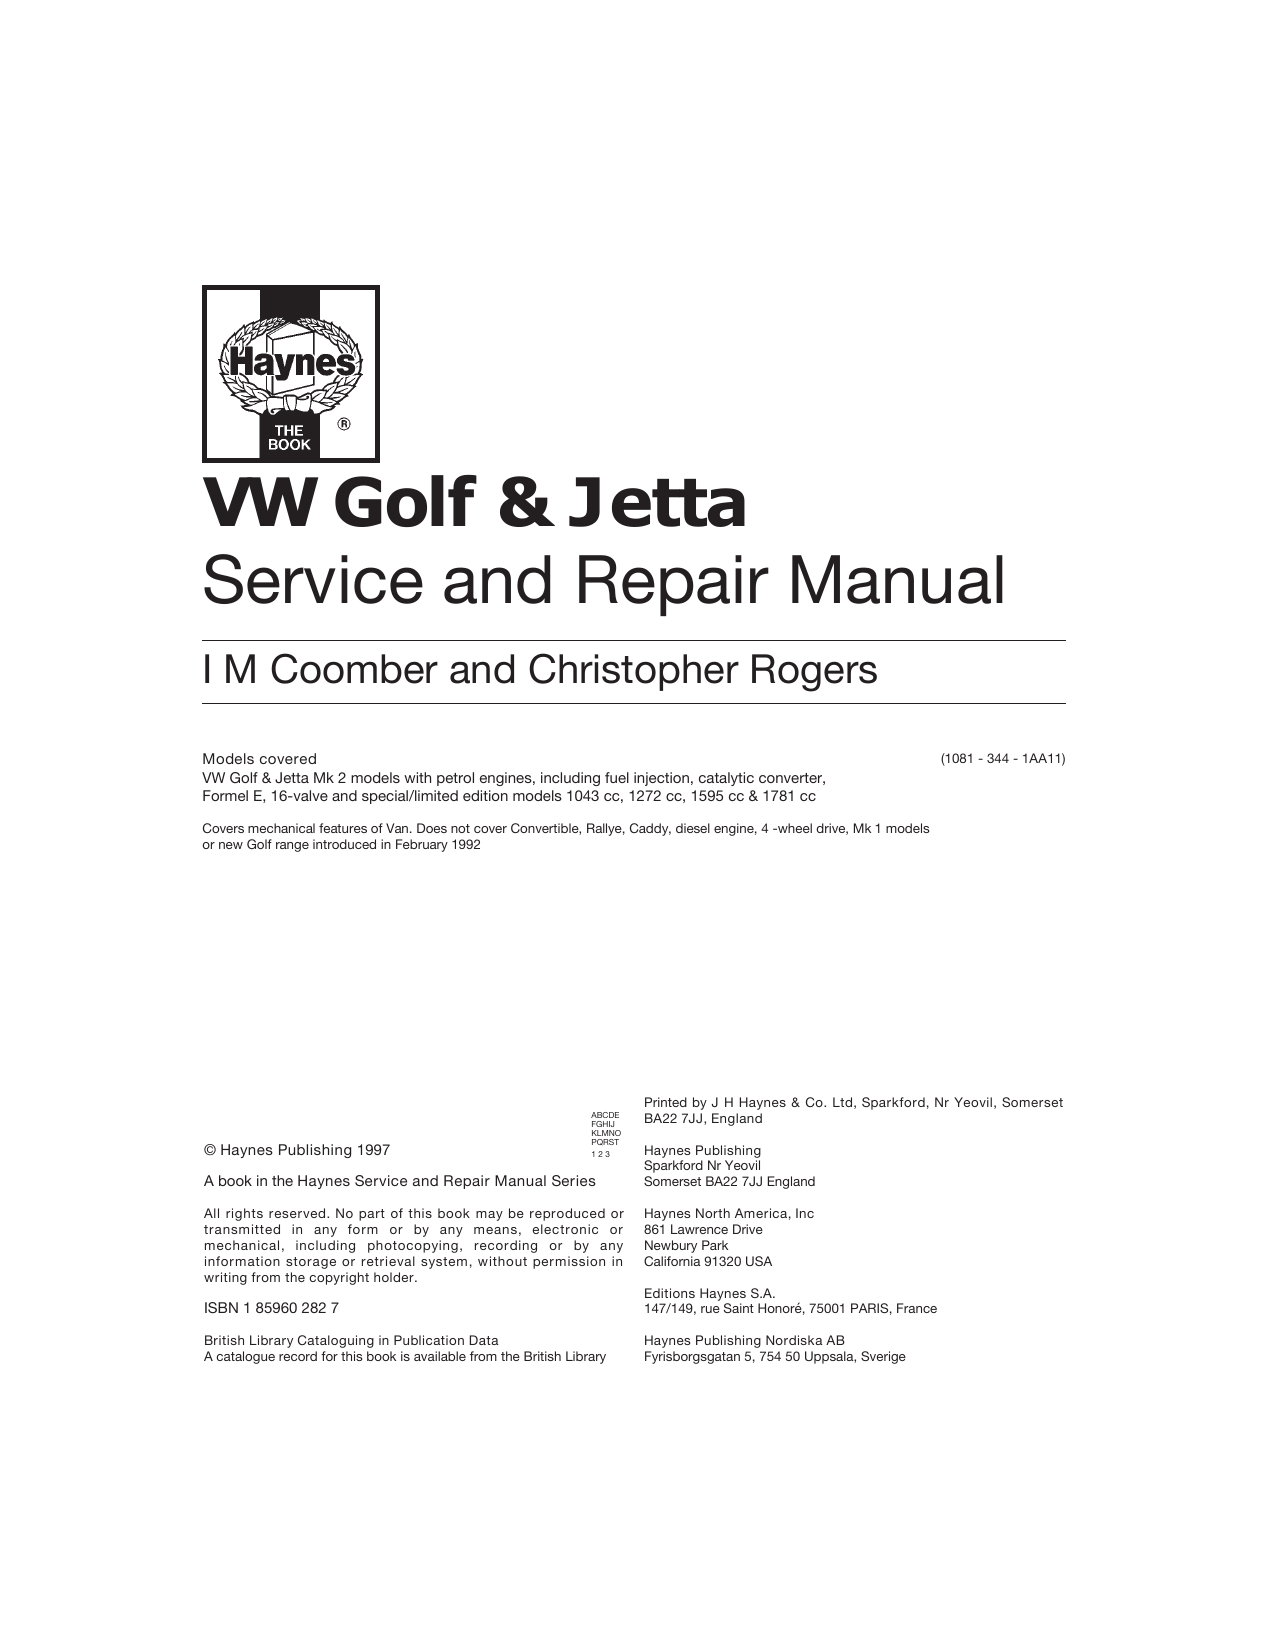 Volkswagen GOLF Service Manual - Free PDF Download (310 Pages)